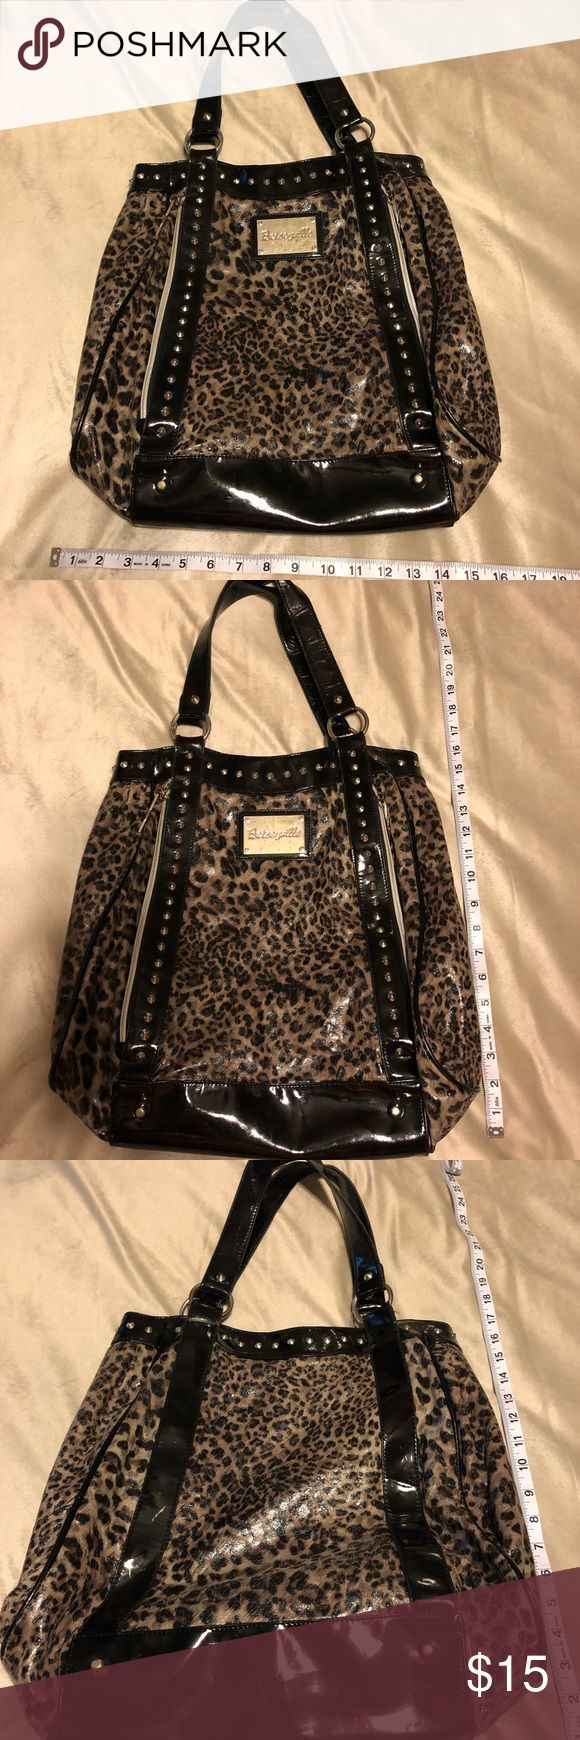 Fun animal print purse Fun animal print Betseyville purse. Super fun with zippers and spikes!! Betseyville Bags Shoulder Bags